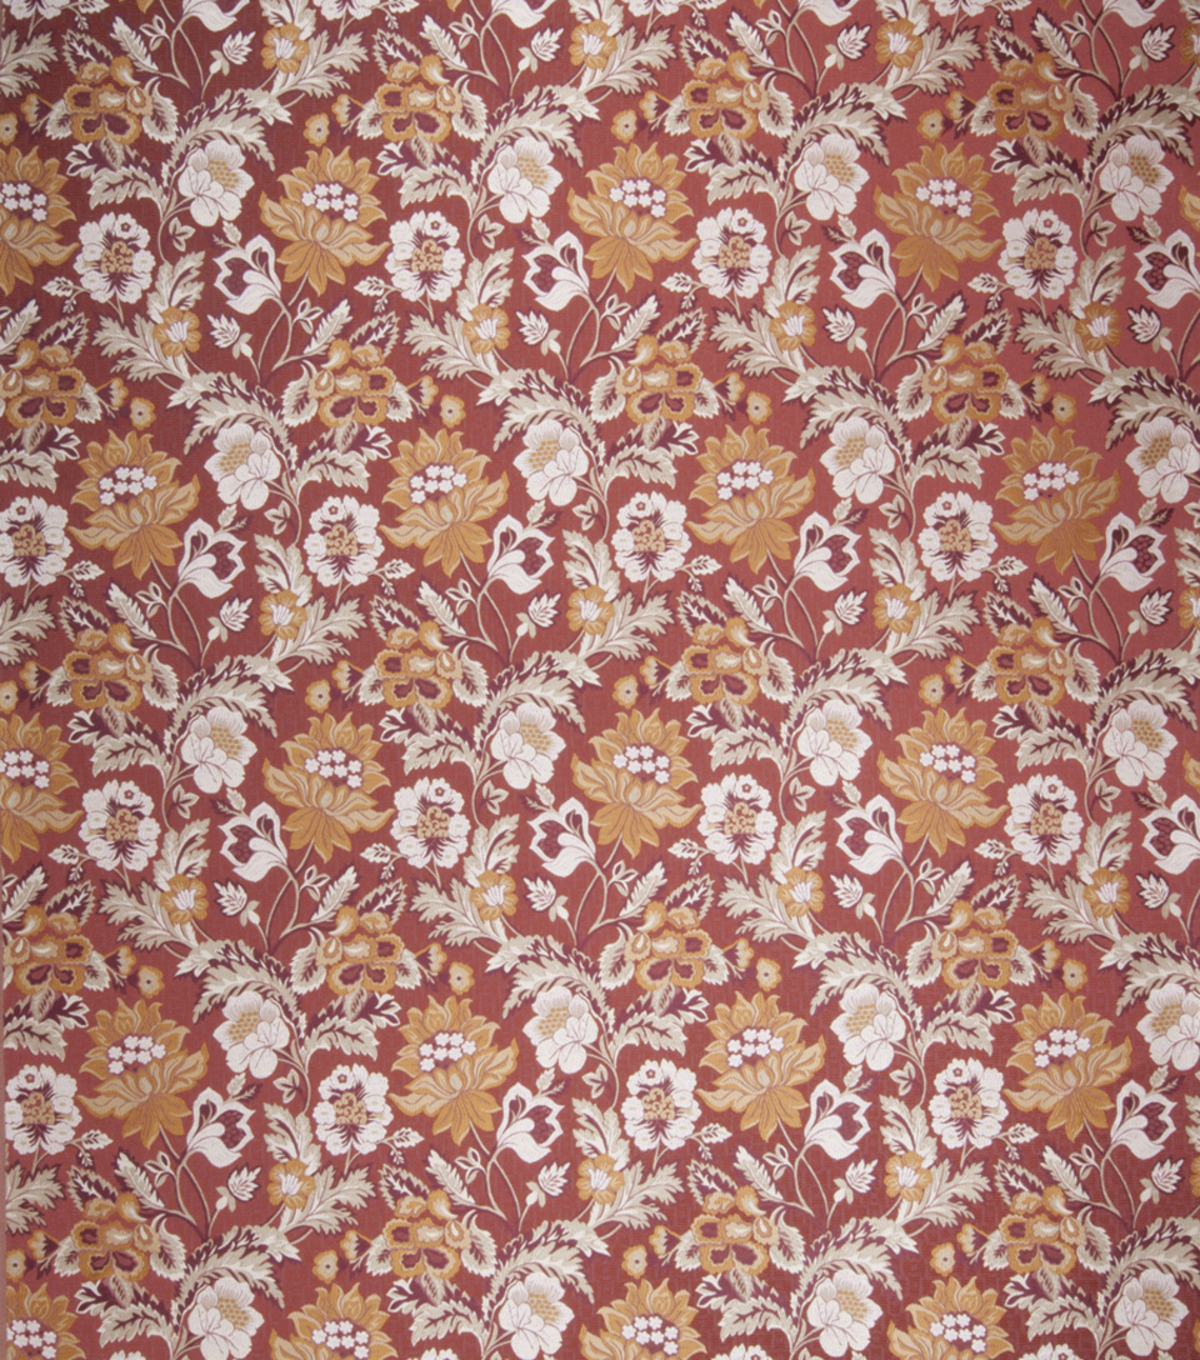 Home Decor 8\u0022x8\u0022 Fabric Swatch-Upholstery Fabric Eaton Square Annex Russet